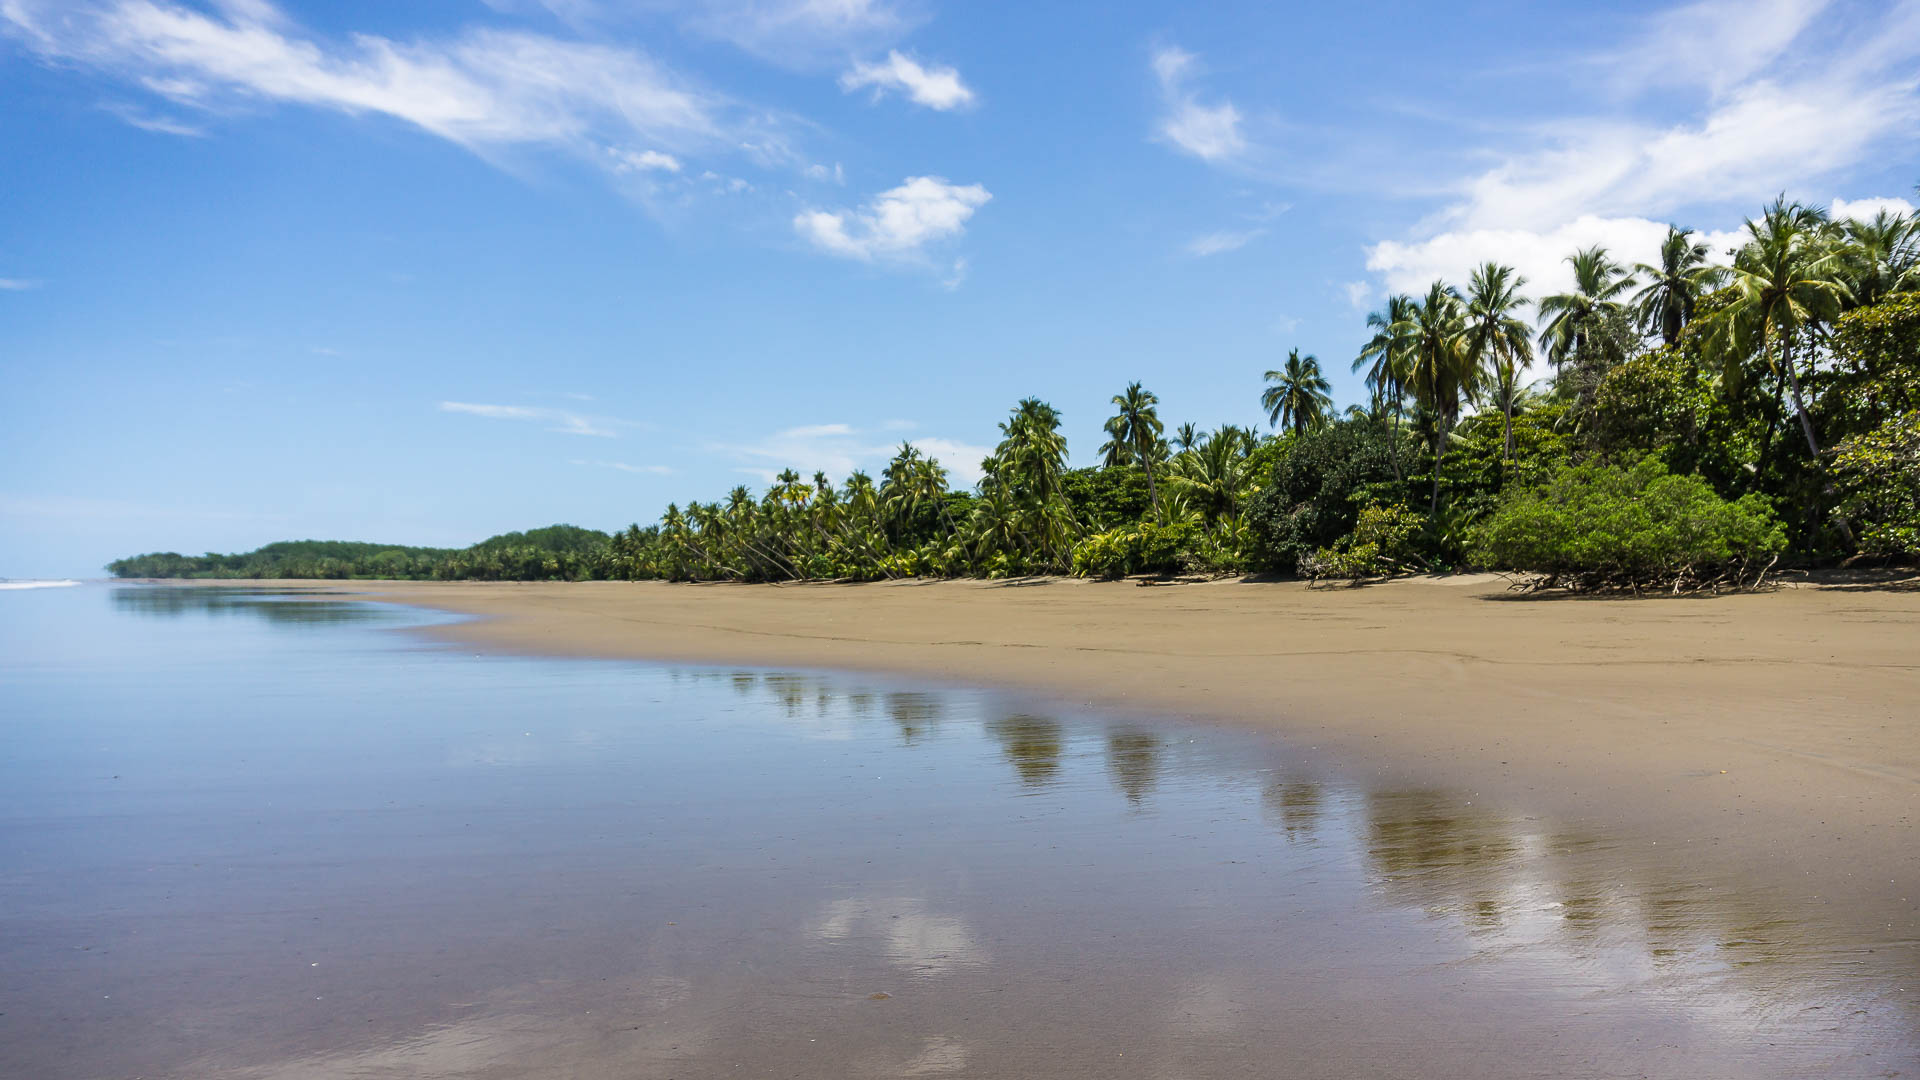 20160822_oliver_staack_costa_rica_DSC0763